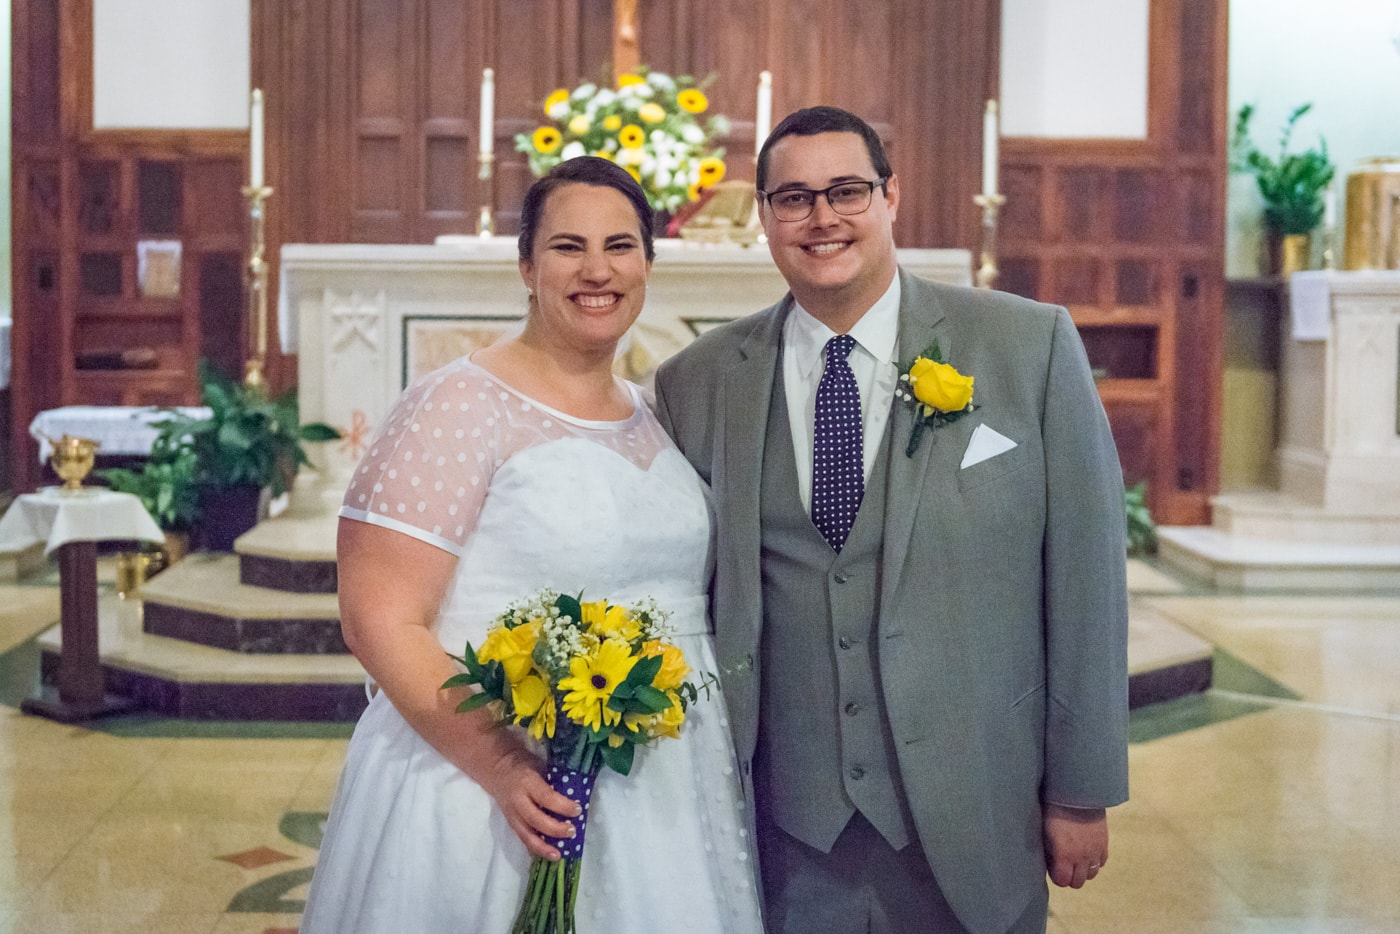 The bride and groom post for a traditional portrait at St James Catholic Church in Falls Church, Virginia